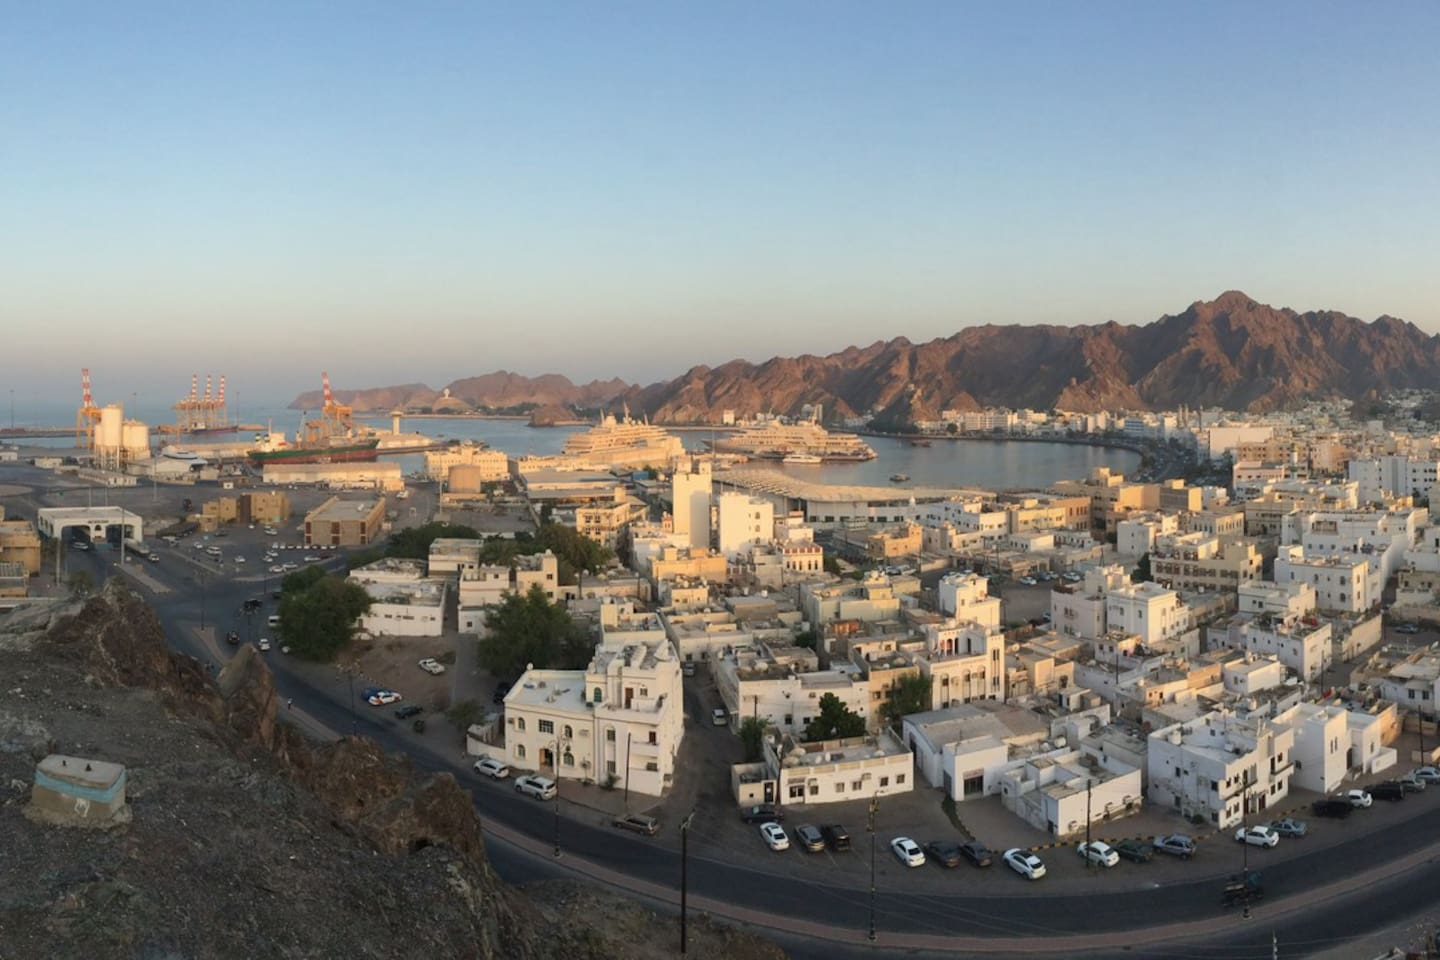 The Cresent Shaped Town of Muttrah at Sunset - Apartment is in Foreground, Cornice about 5-10 walk on the Waterfront